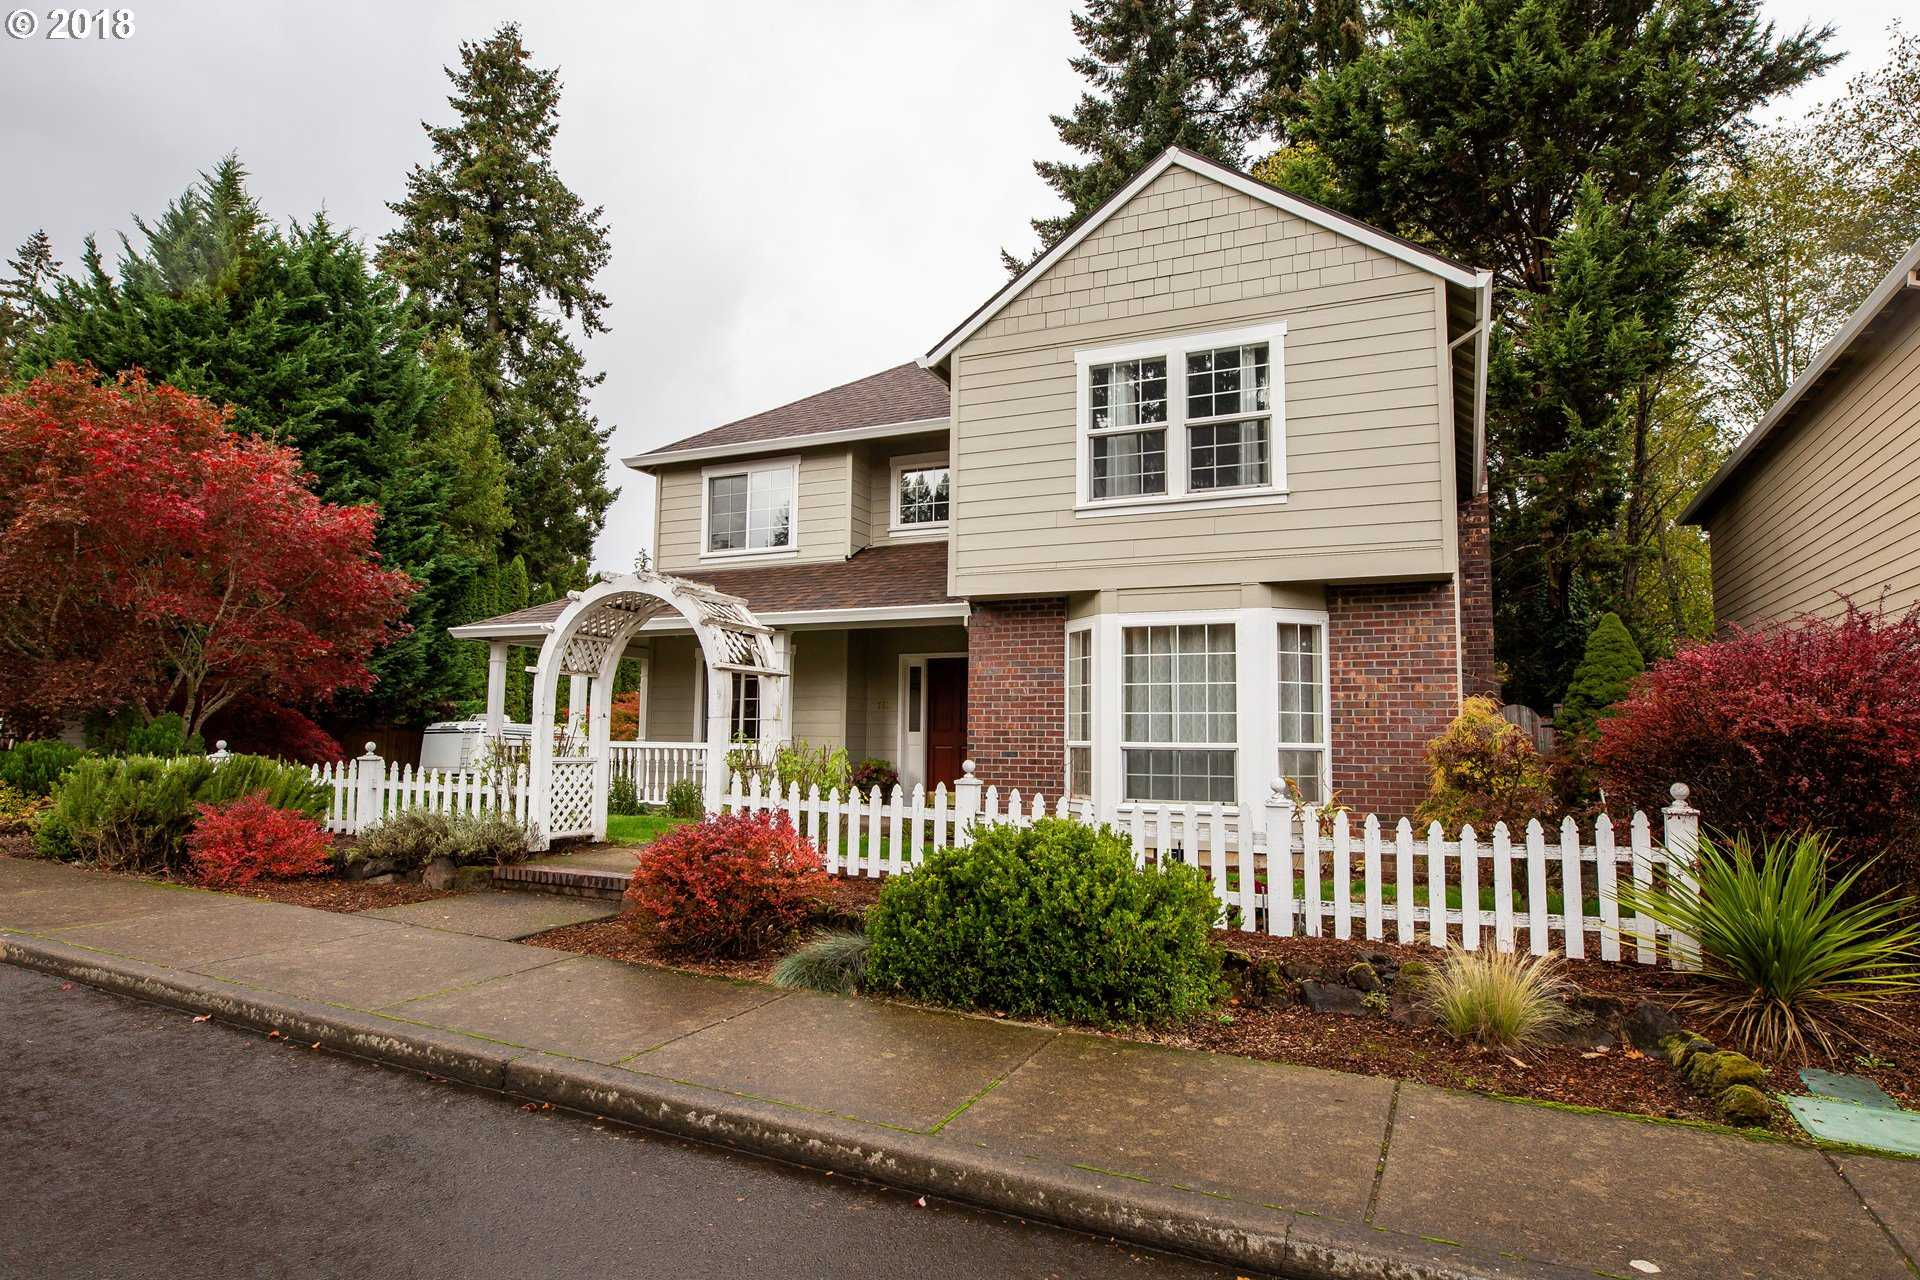 $449,000 - 4Br/3Ba -  for Sale in Tigard